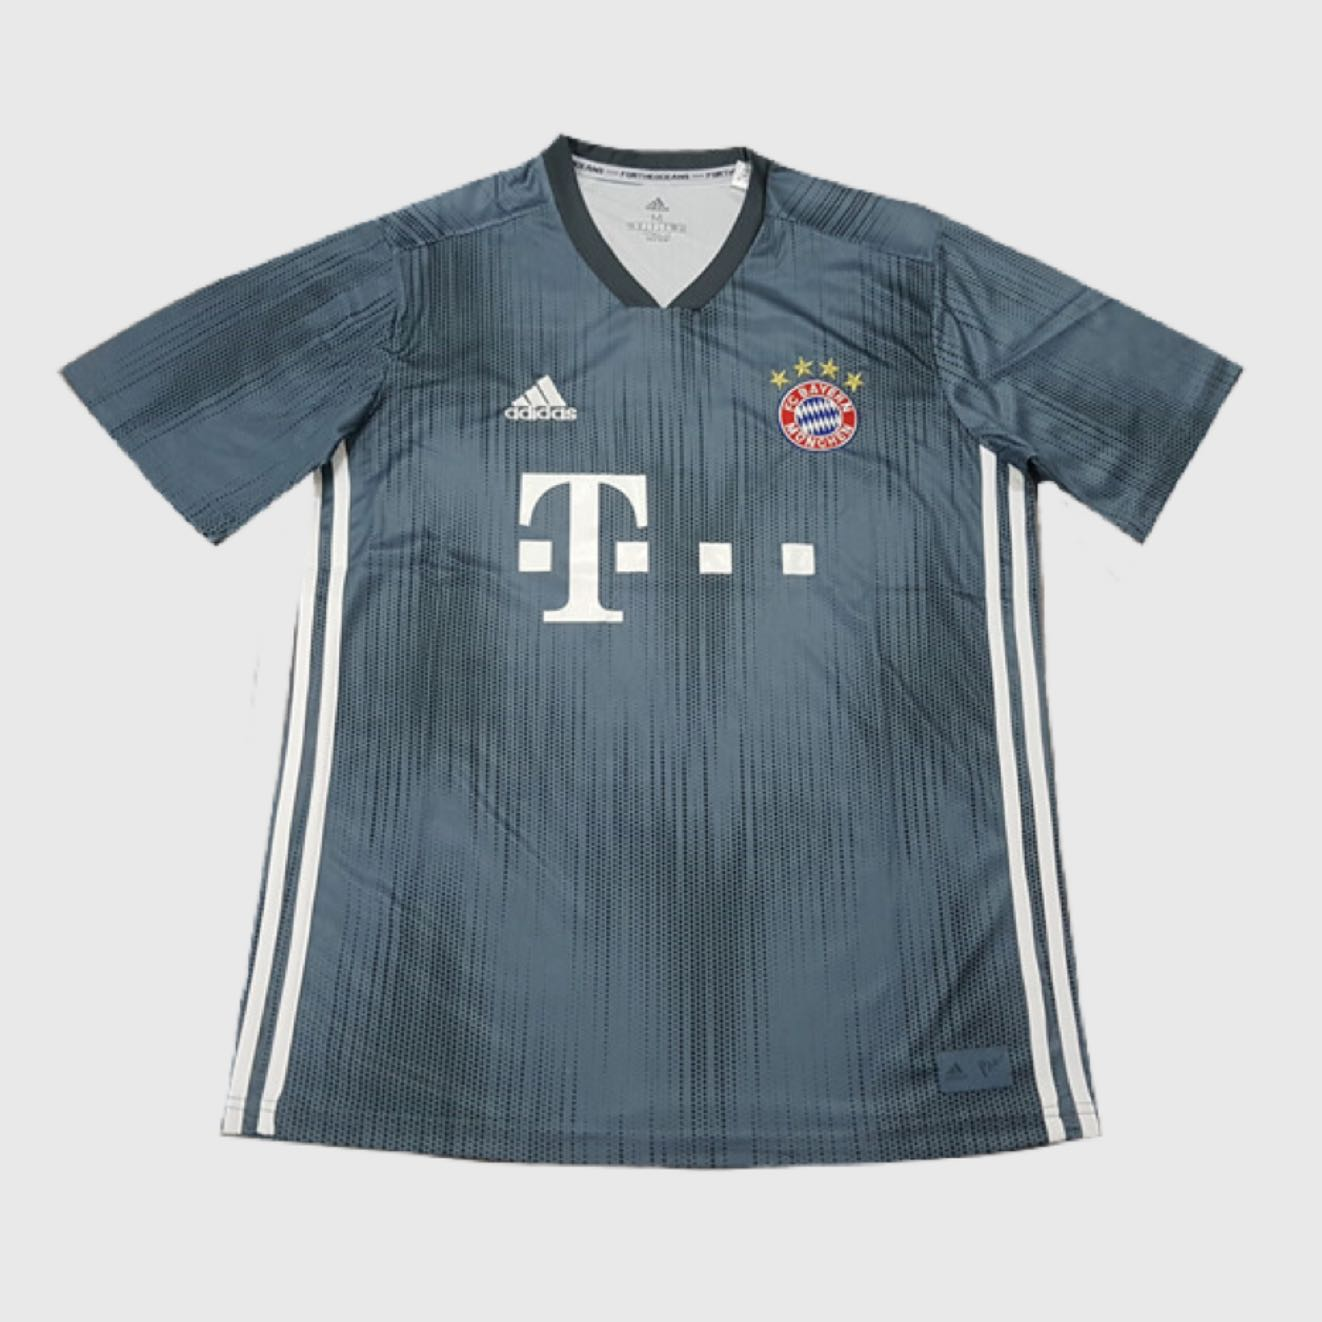 e09331129 ❗️SALE❗️Bayern Munich 18-19 Home Away Third Jersey